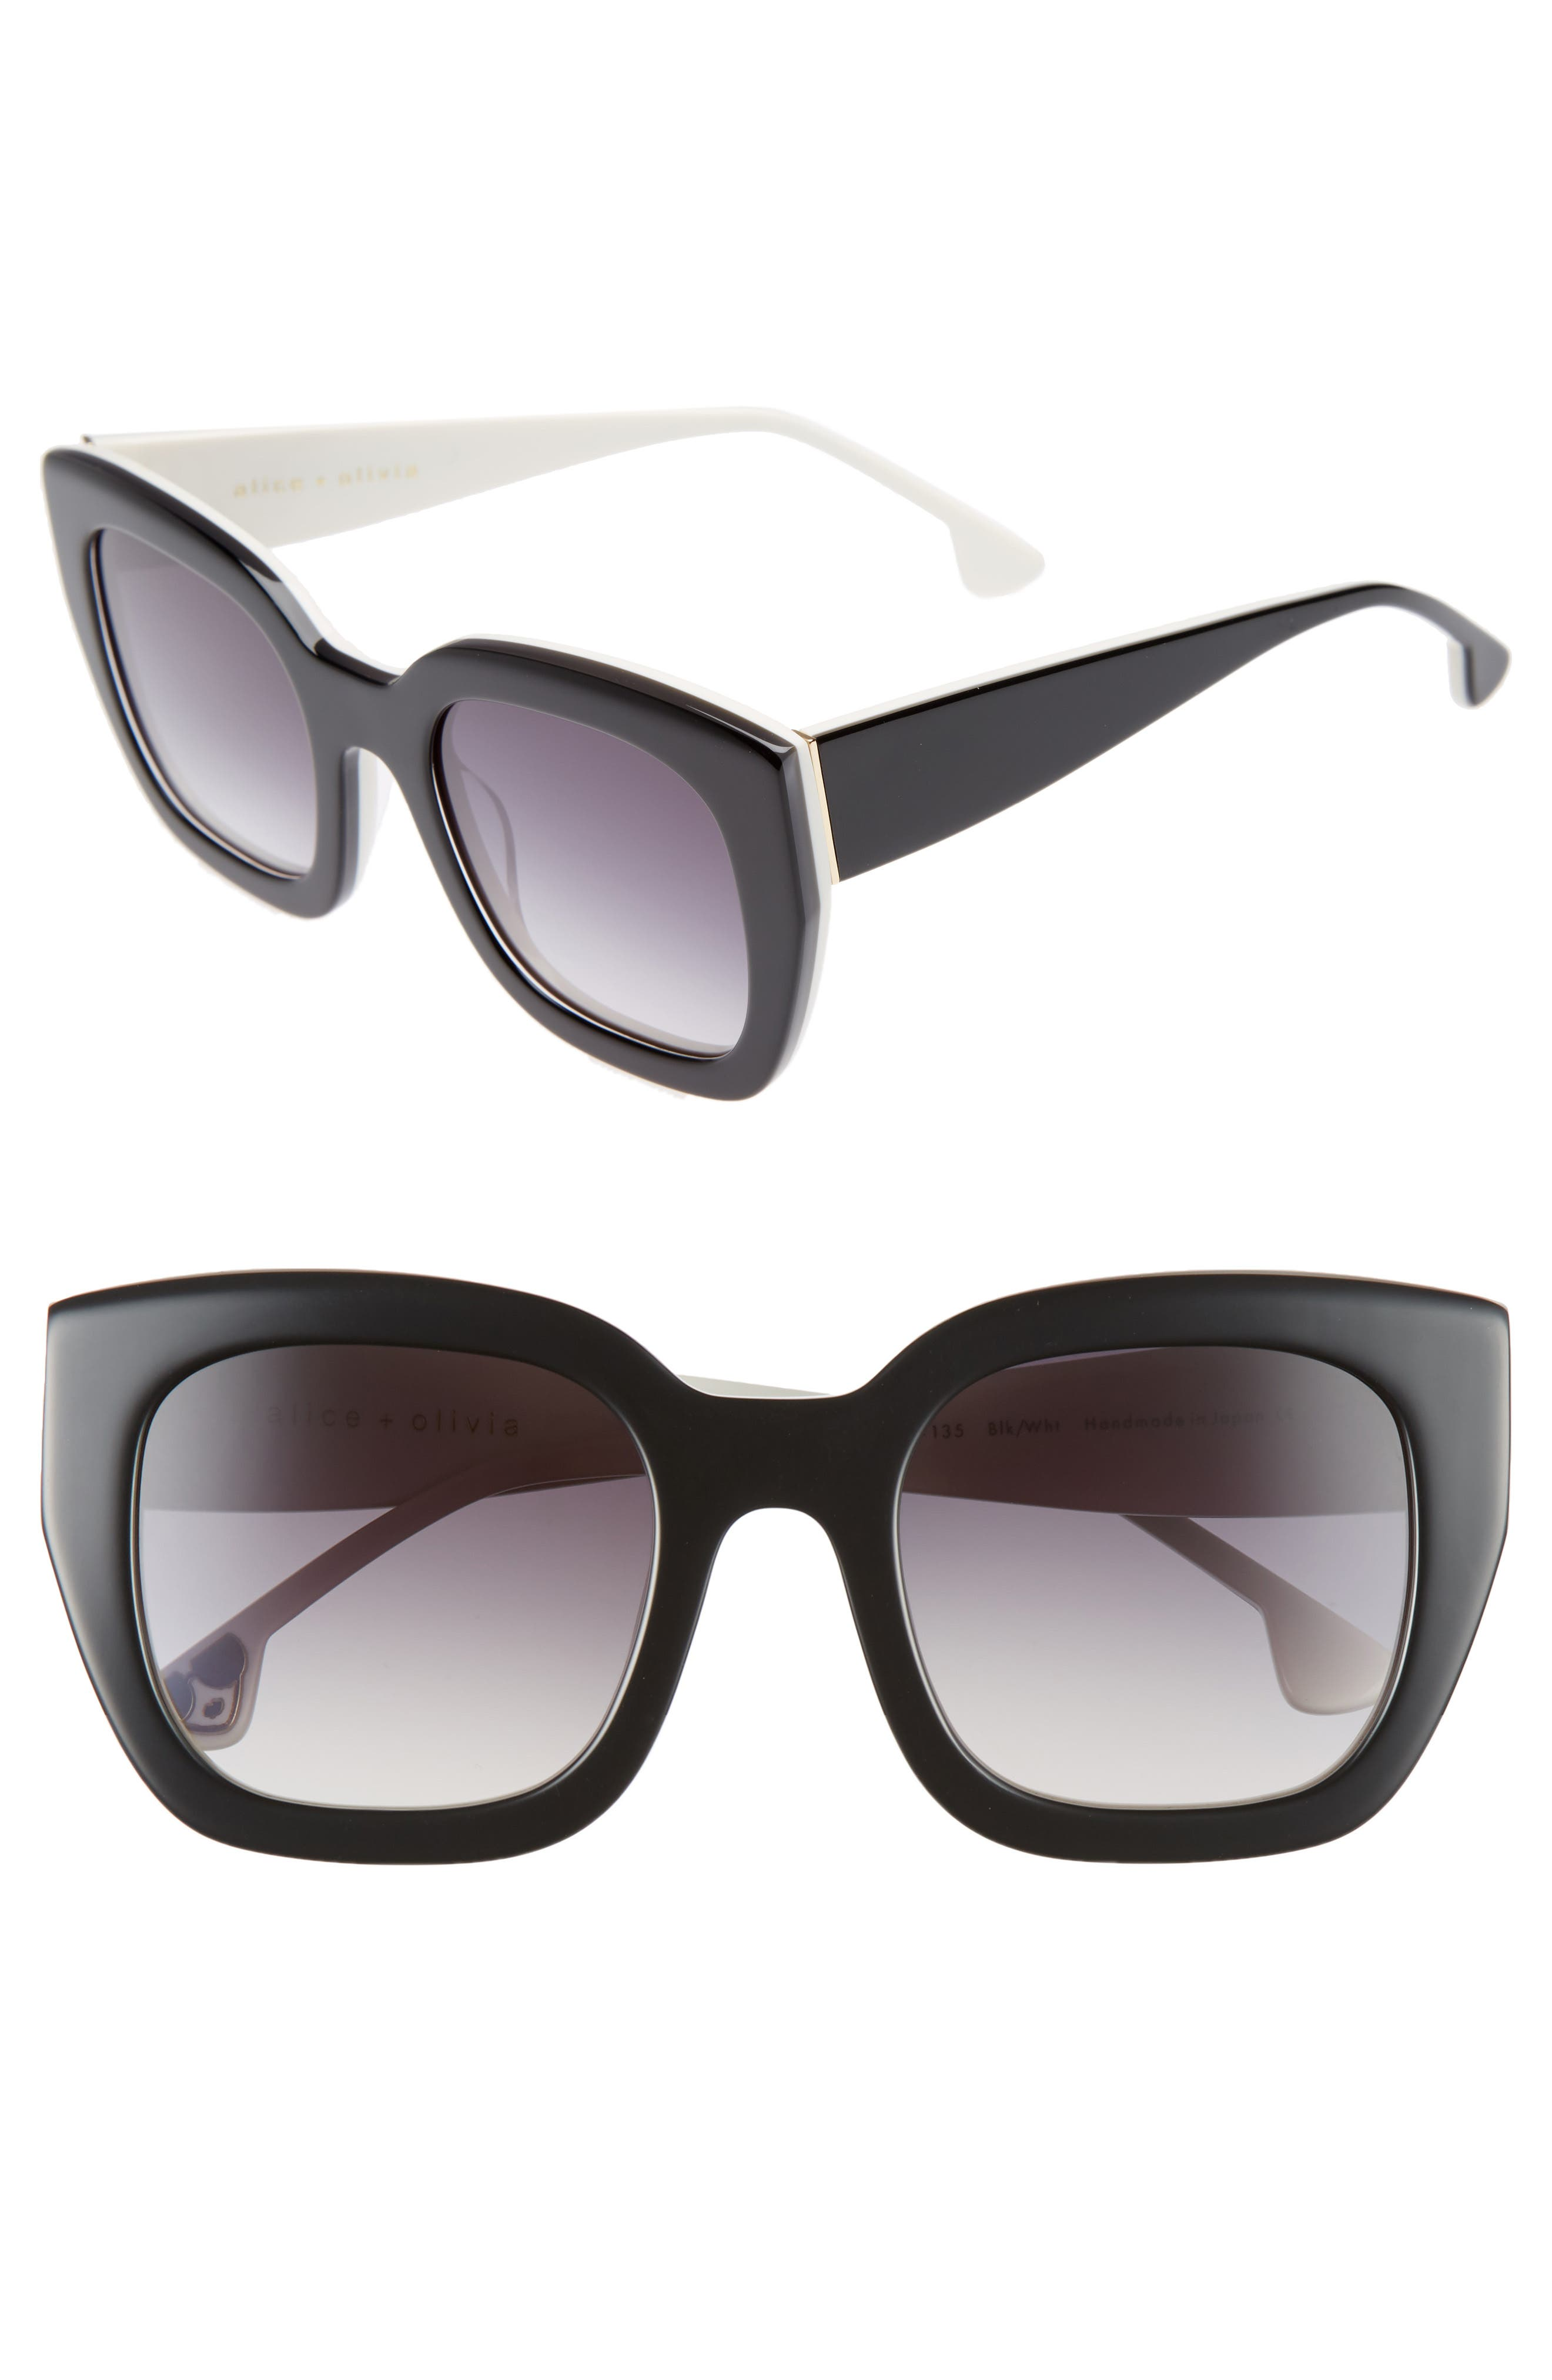 Aberdeen 50mm Square Sunglasses,                         Main,                         color, 001